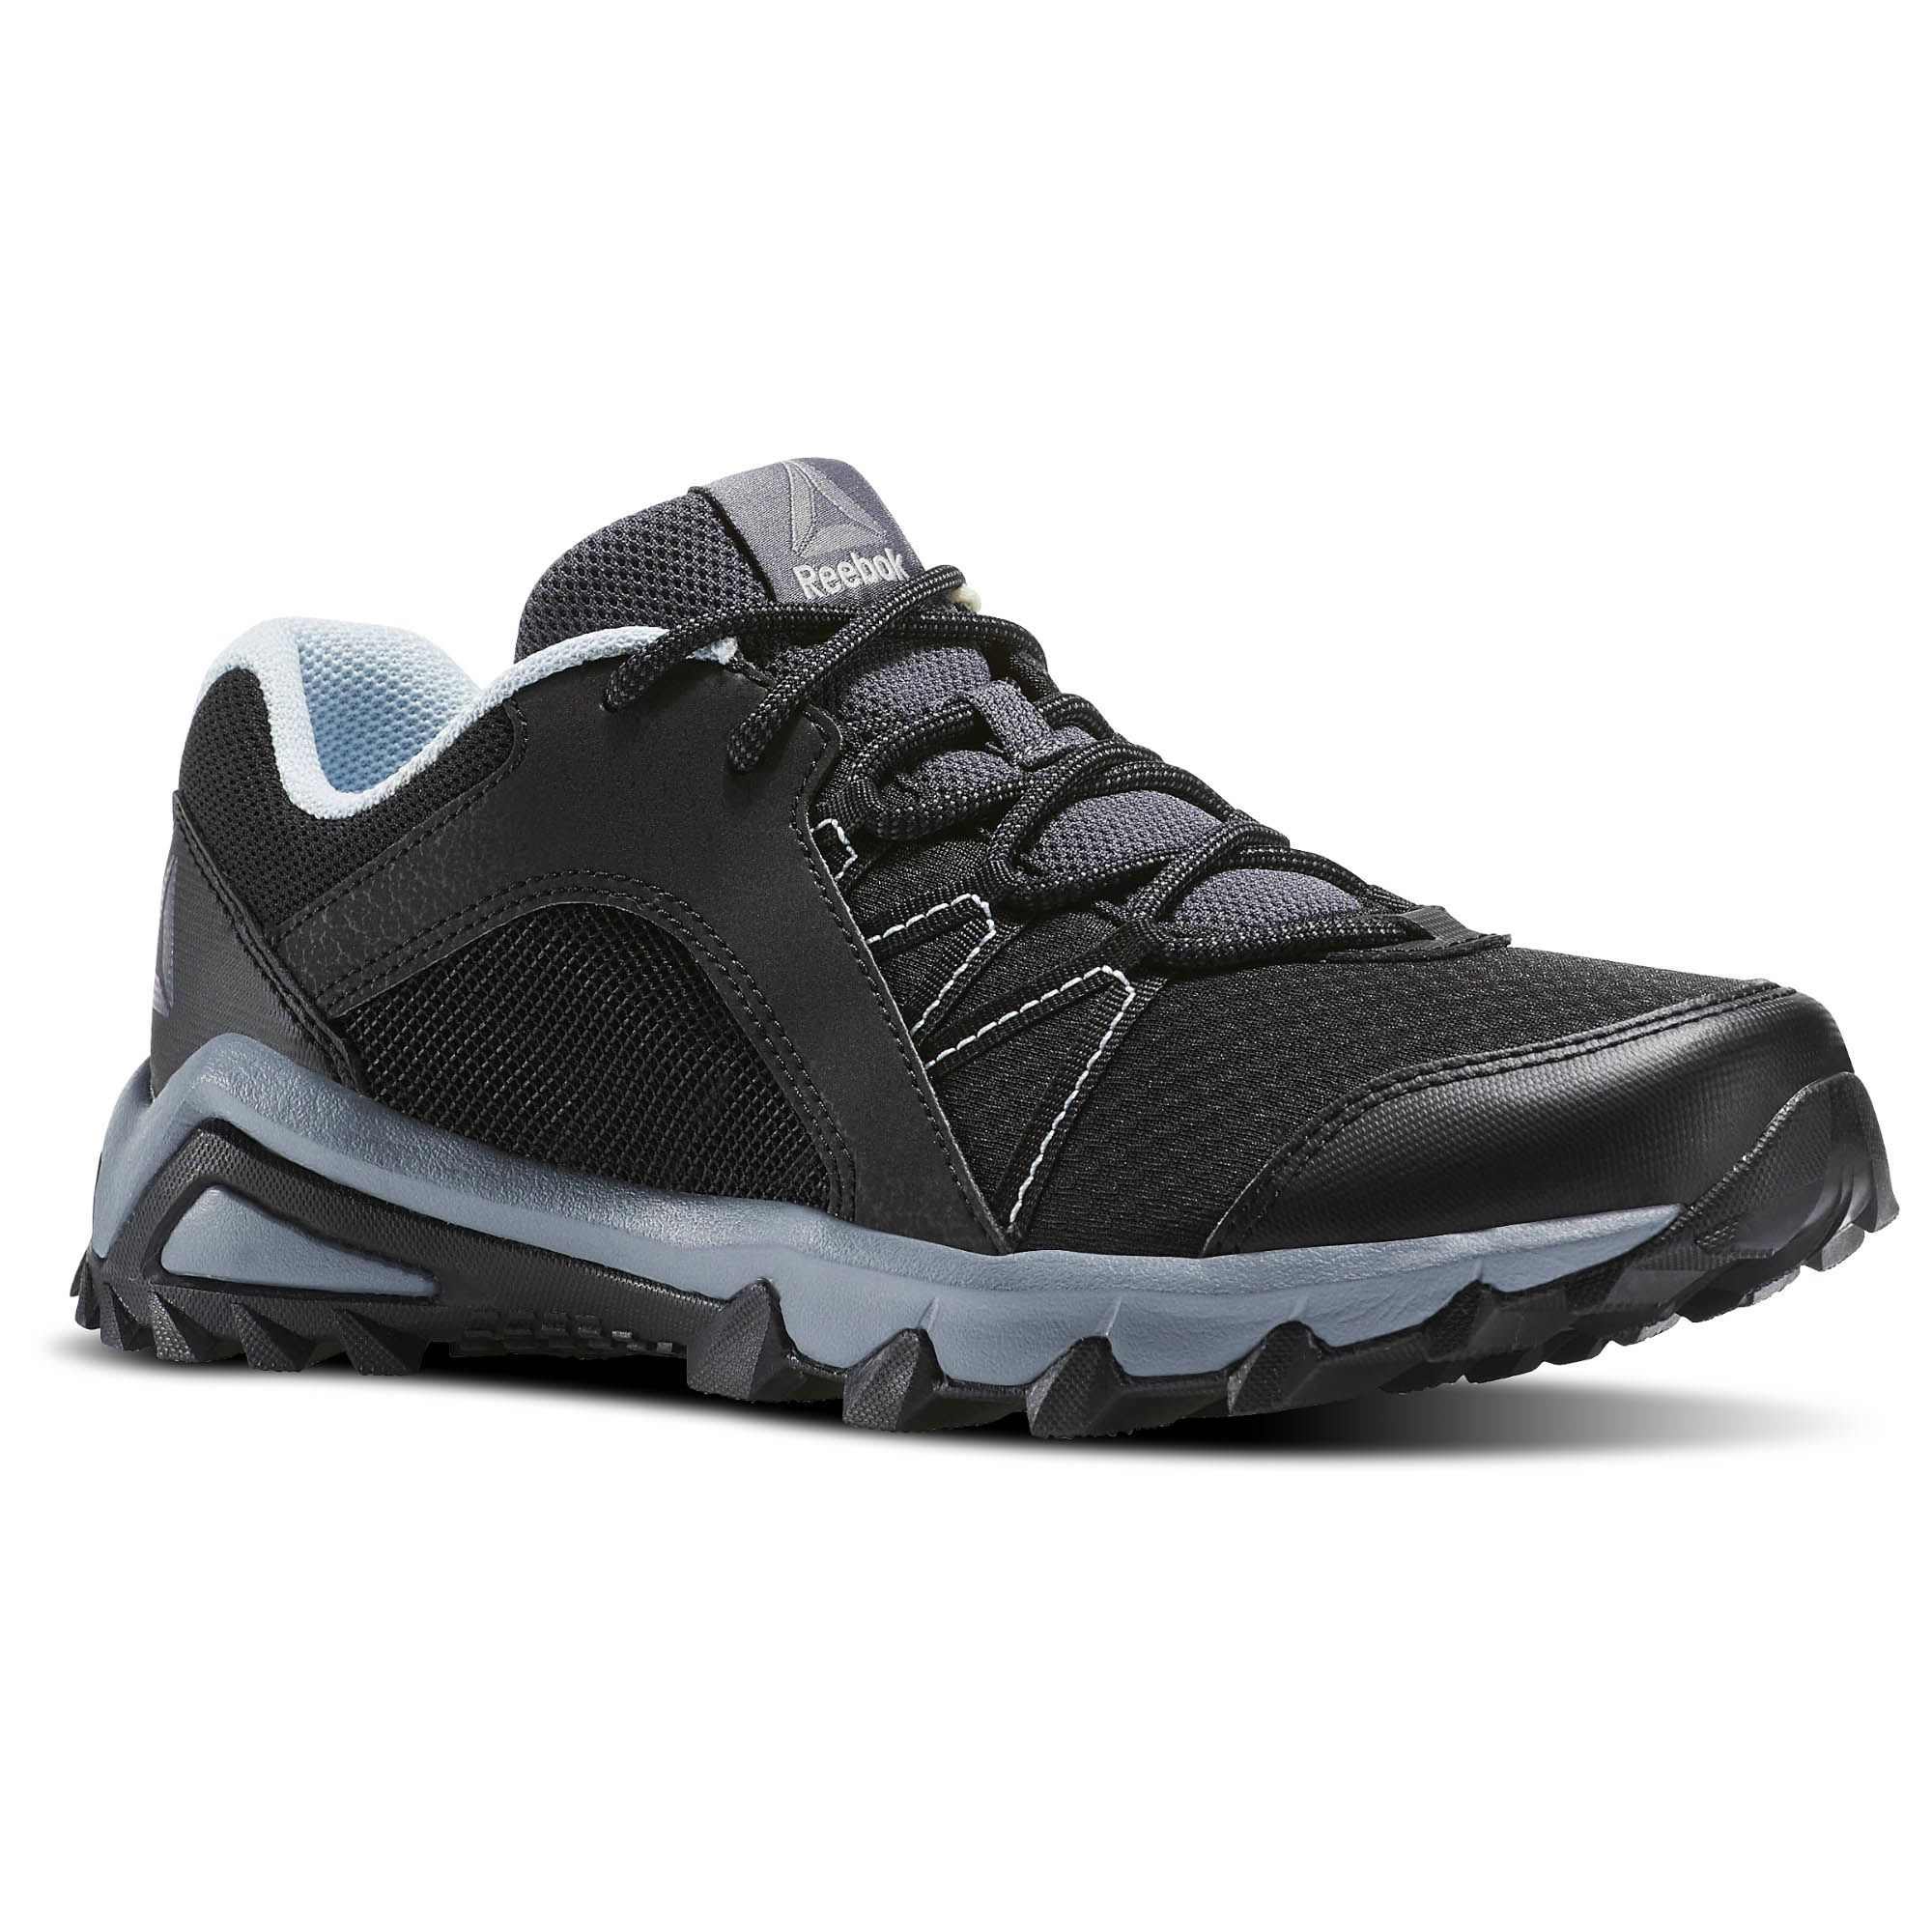 Shop for Trailgrip 6.0 Black at reebok.co.uk! See all